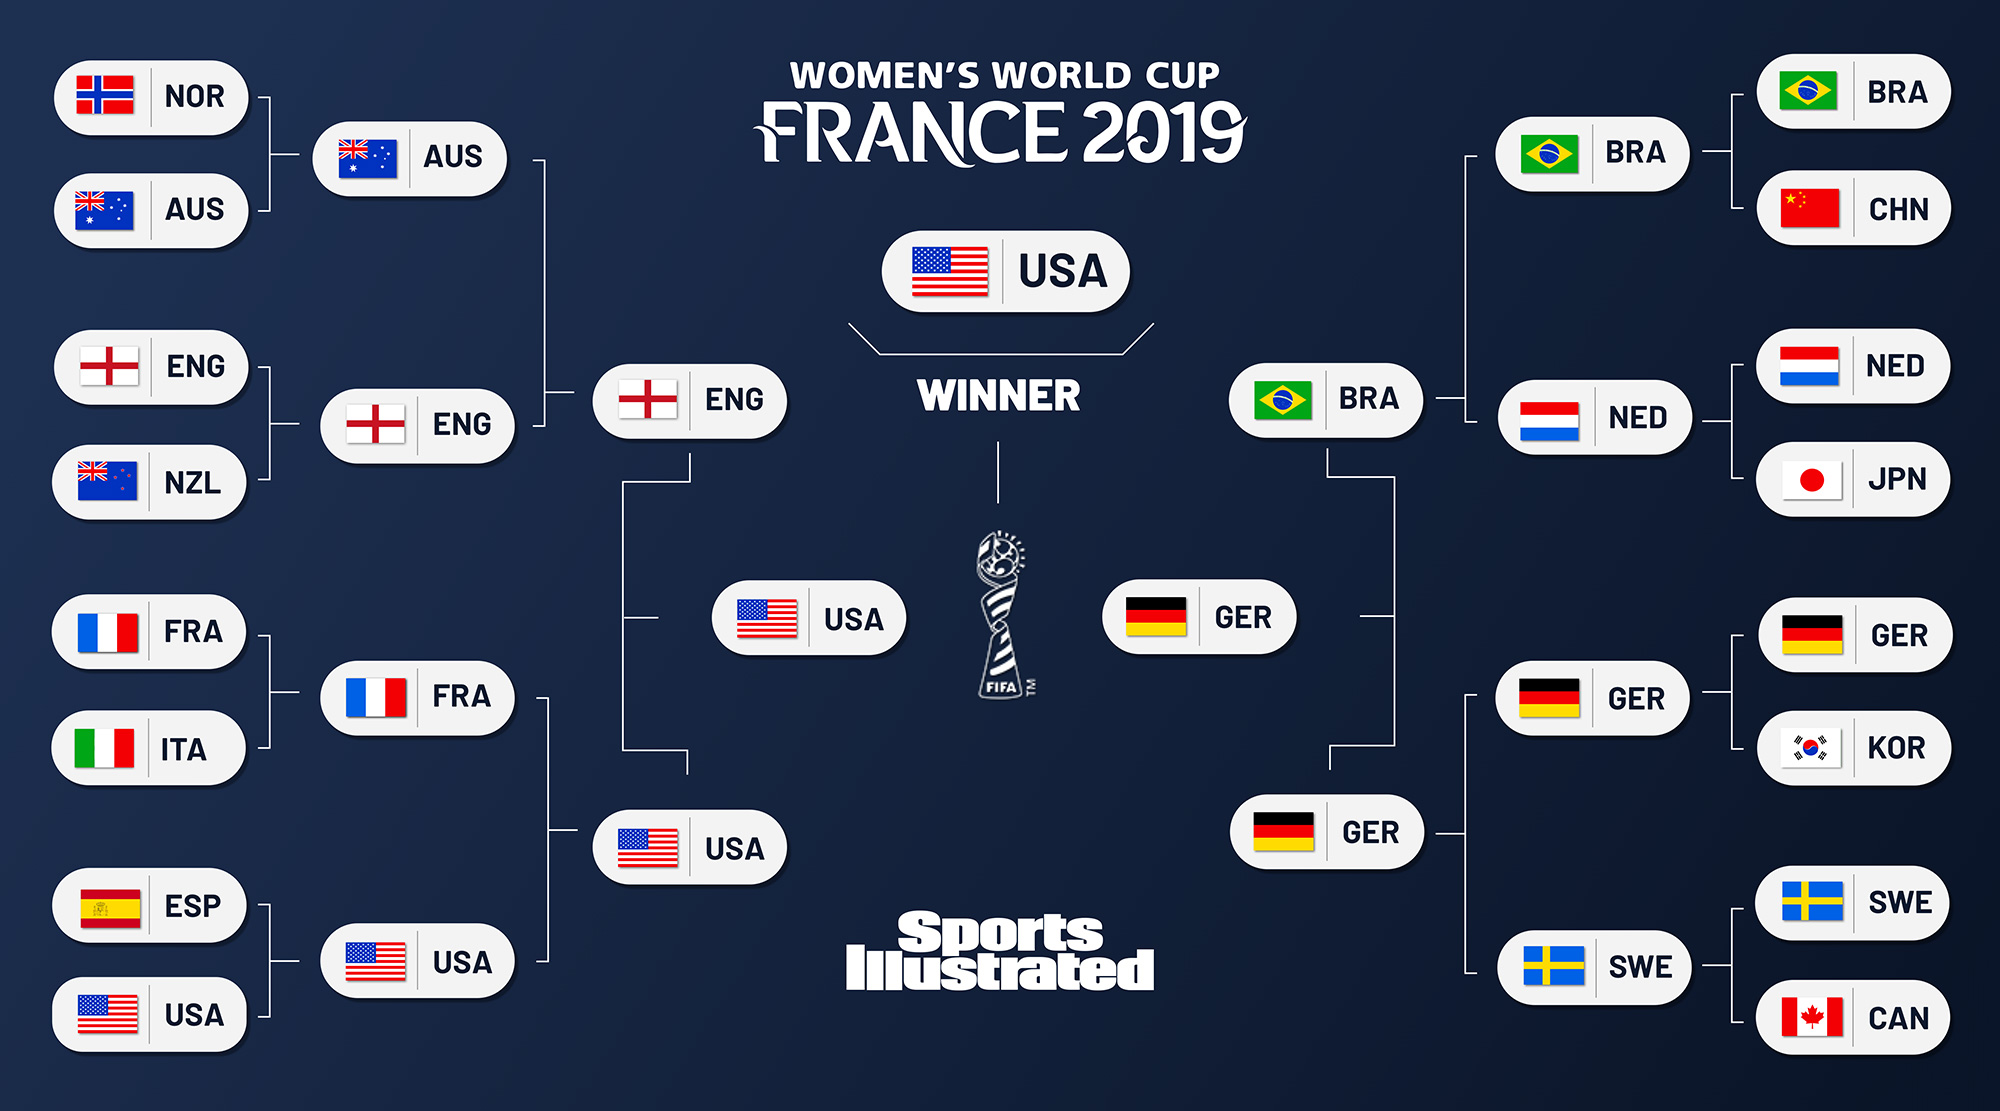 photograph regarding World Cup Bracket Printable identify Womens World-wide Cup 2019 predictions: Knockout bracket selections